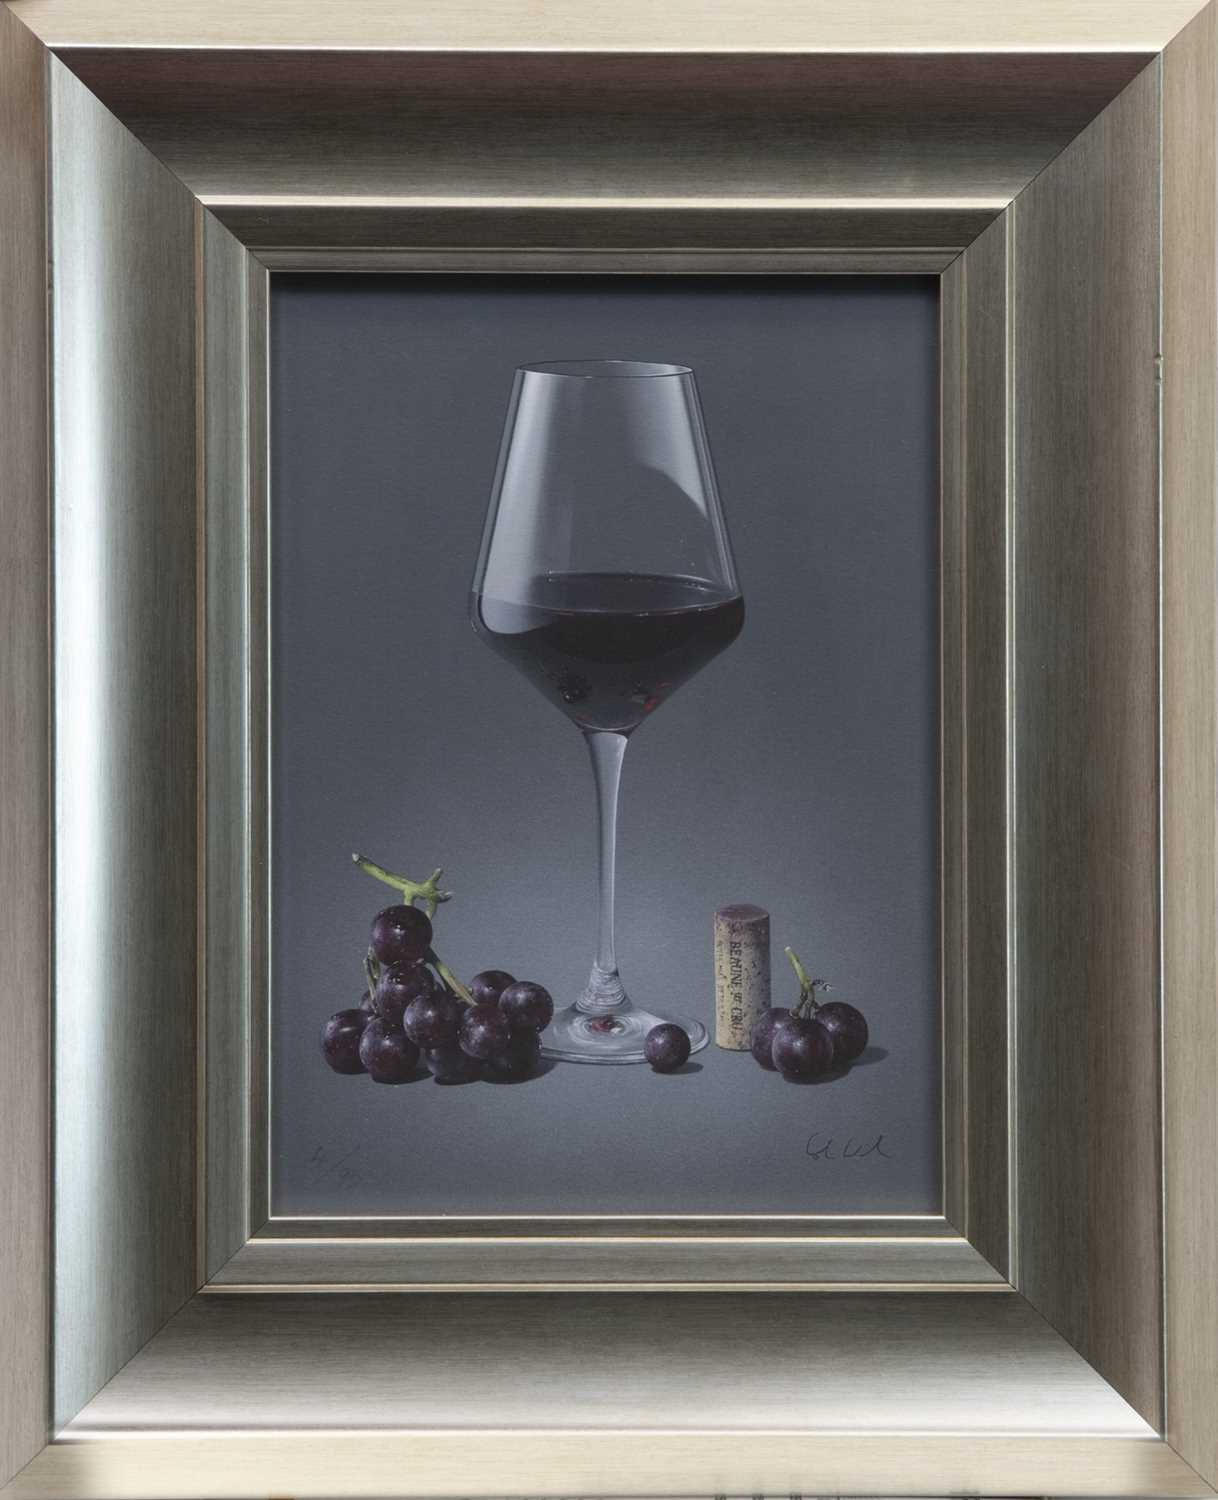 Lot 134 - REFLECTIONS ON RED, A GICLEE PRINT BY COLIN WILSON